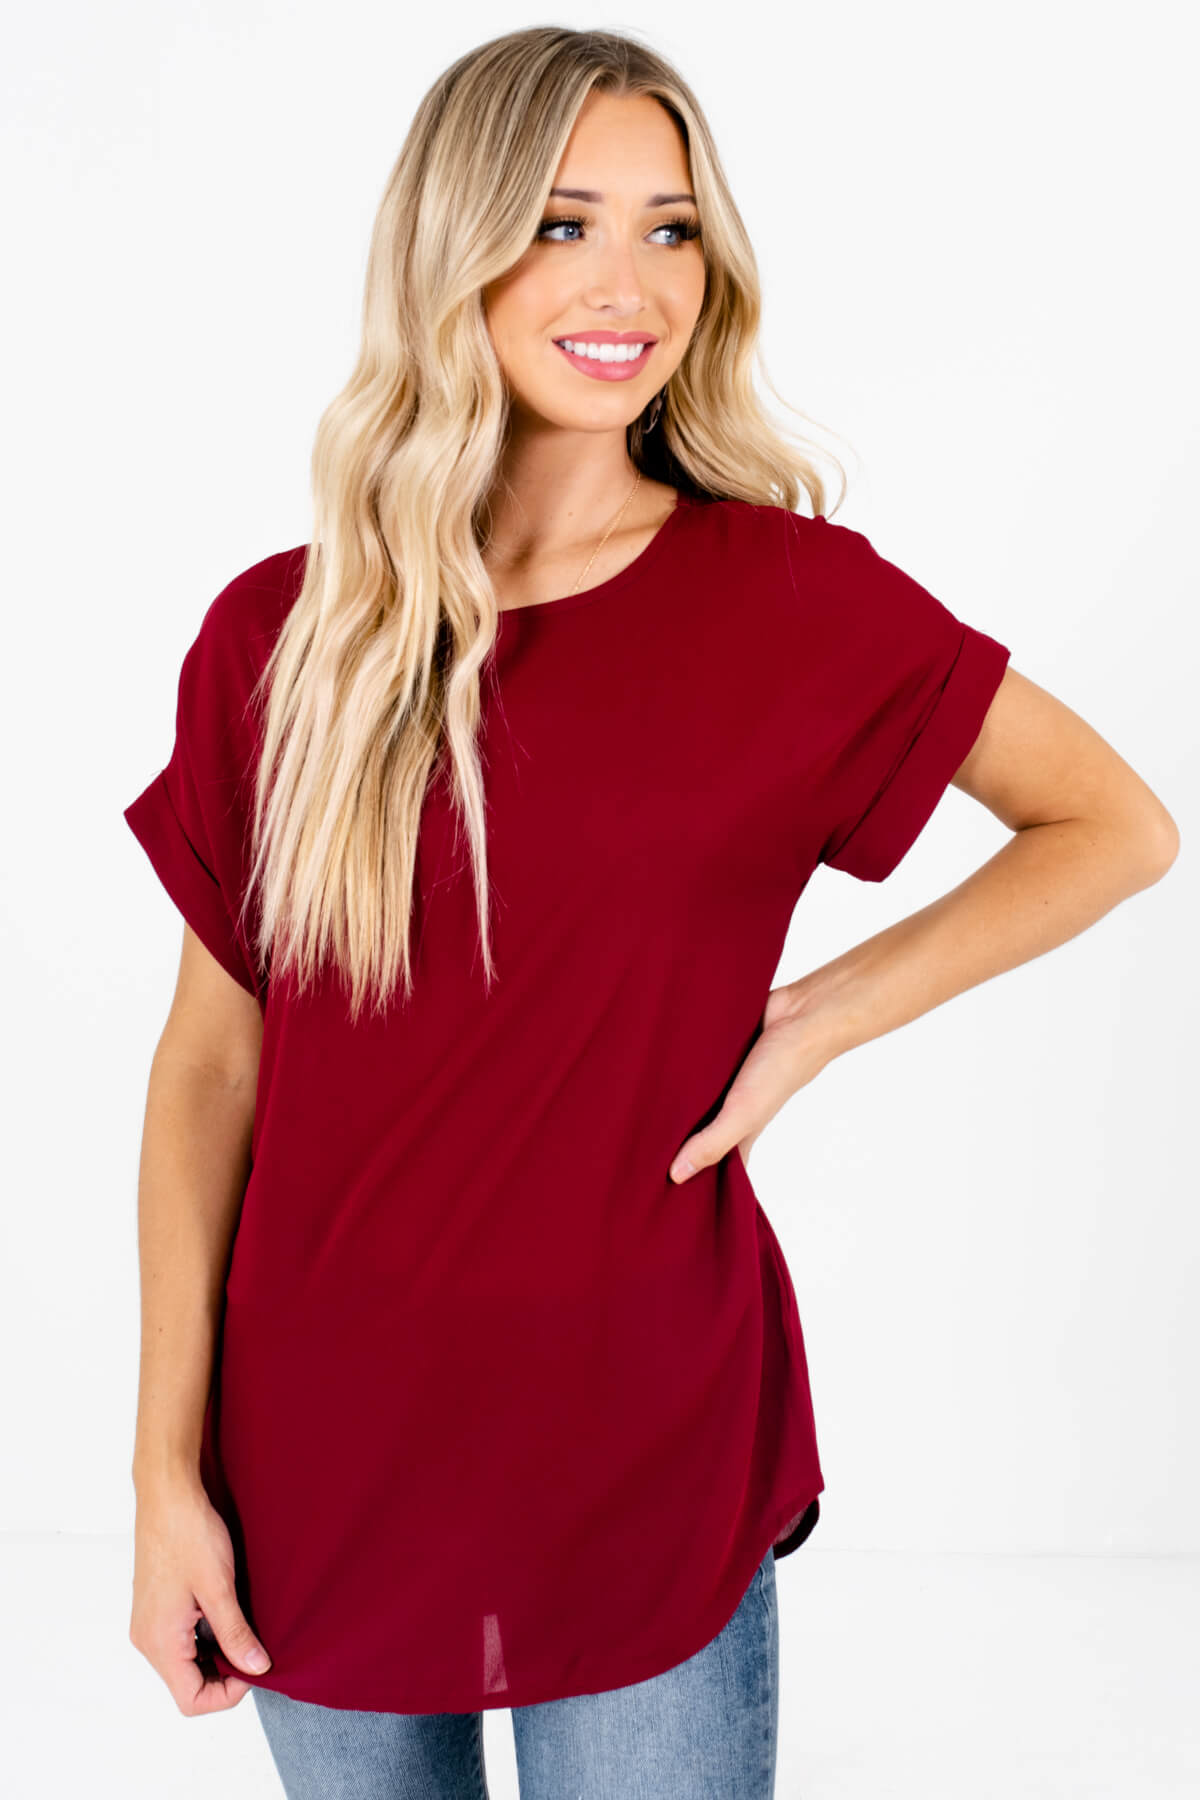 Burgundy Lightweight and Flowy Boutique Blouses for Women